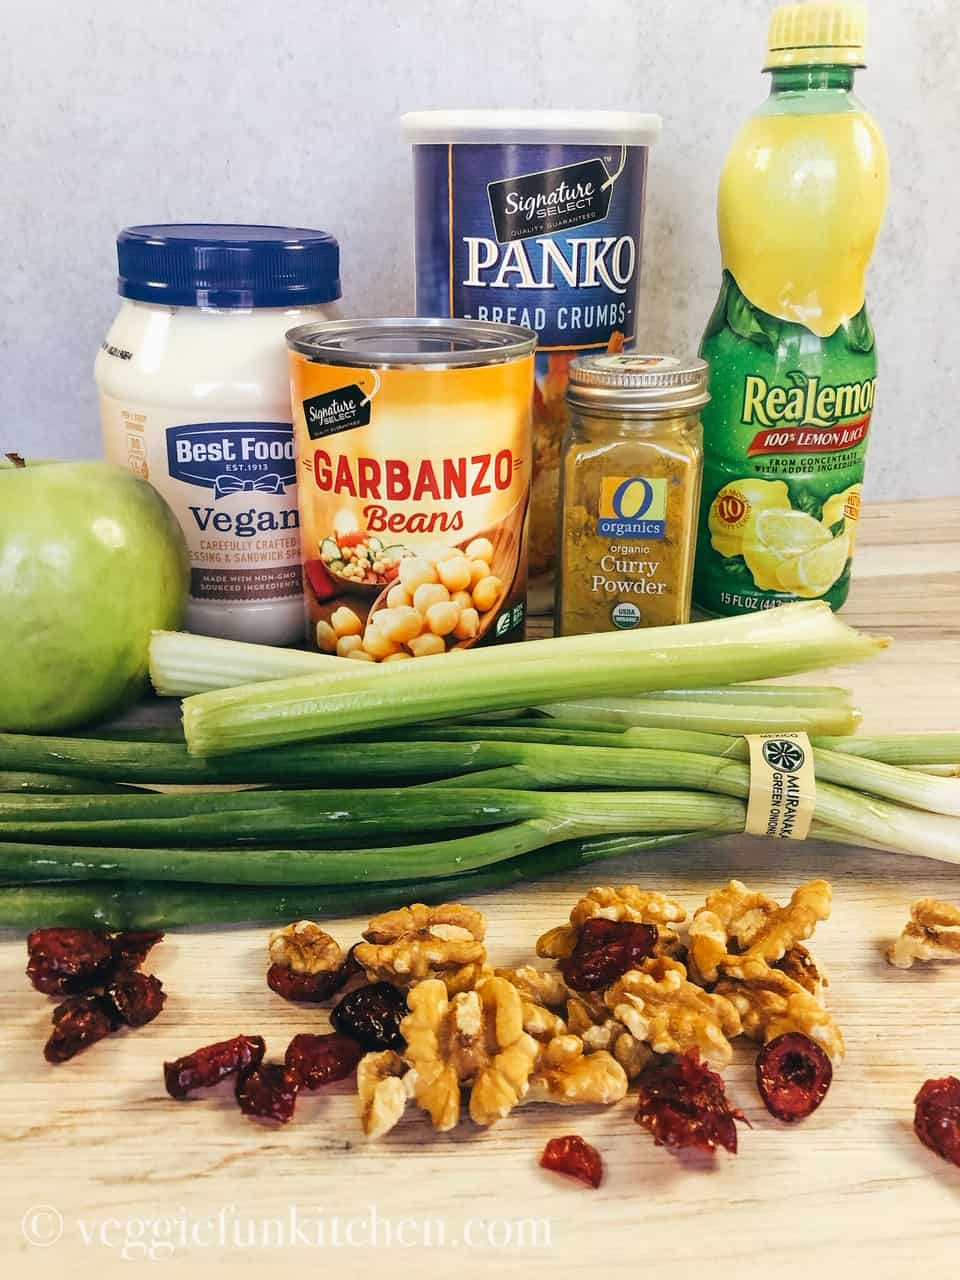 Ingredients you will need to make Curried Chickpea Salad including: vegan mayo, garbanzo beans, panko bread crumbs, lemon juice, granny smith apple, curry powder, celery, green onions, walnutsk, and dried cranberries.